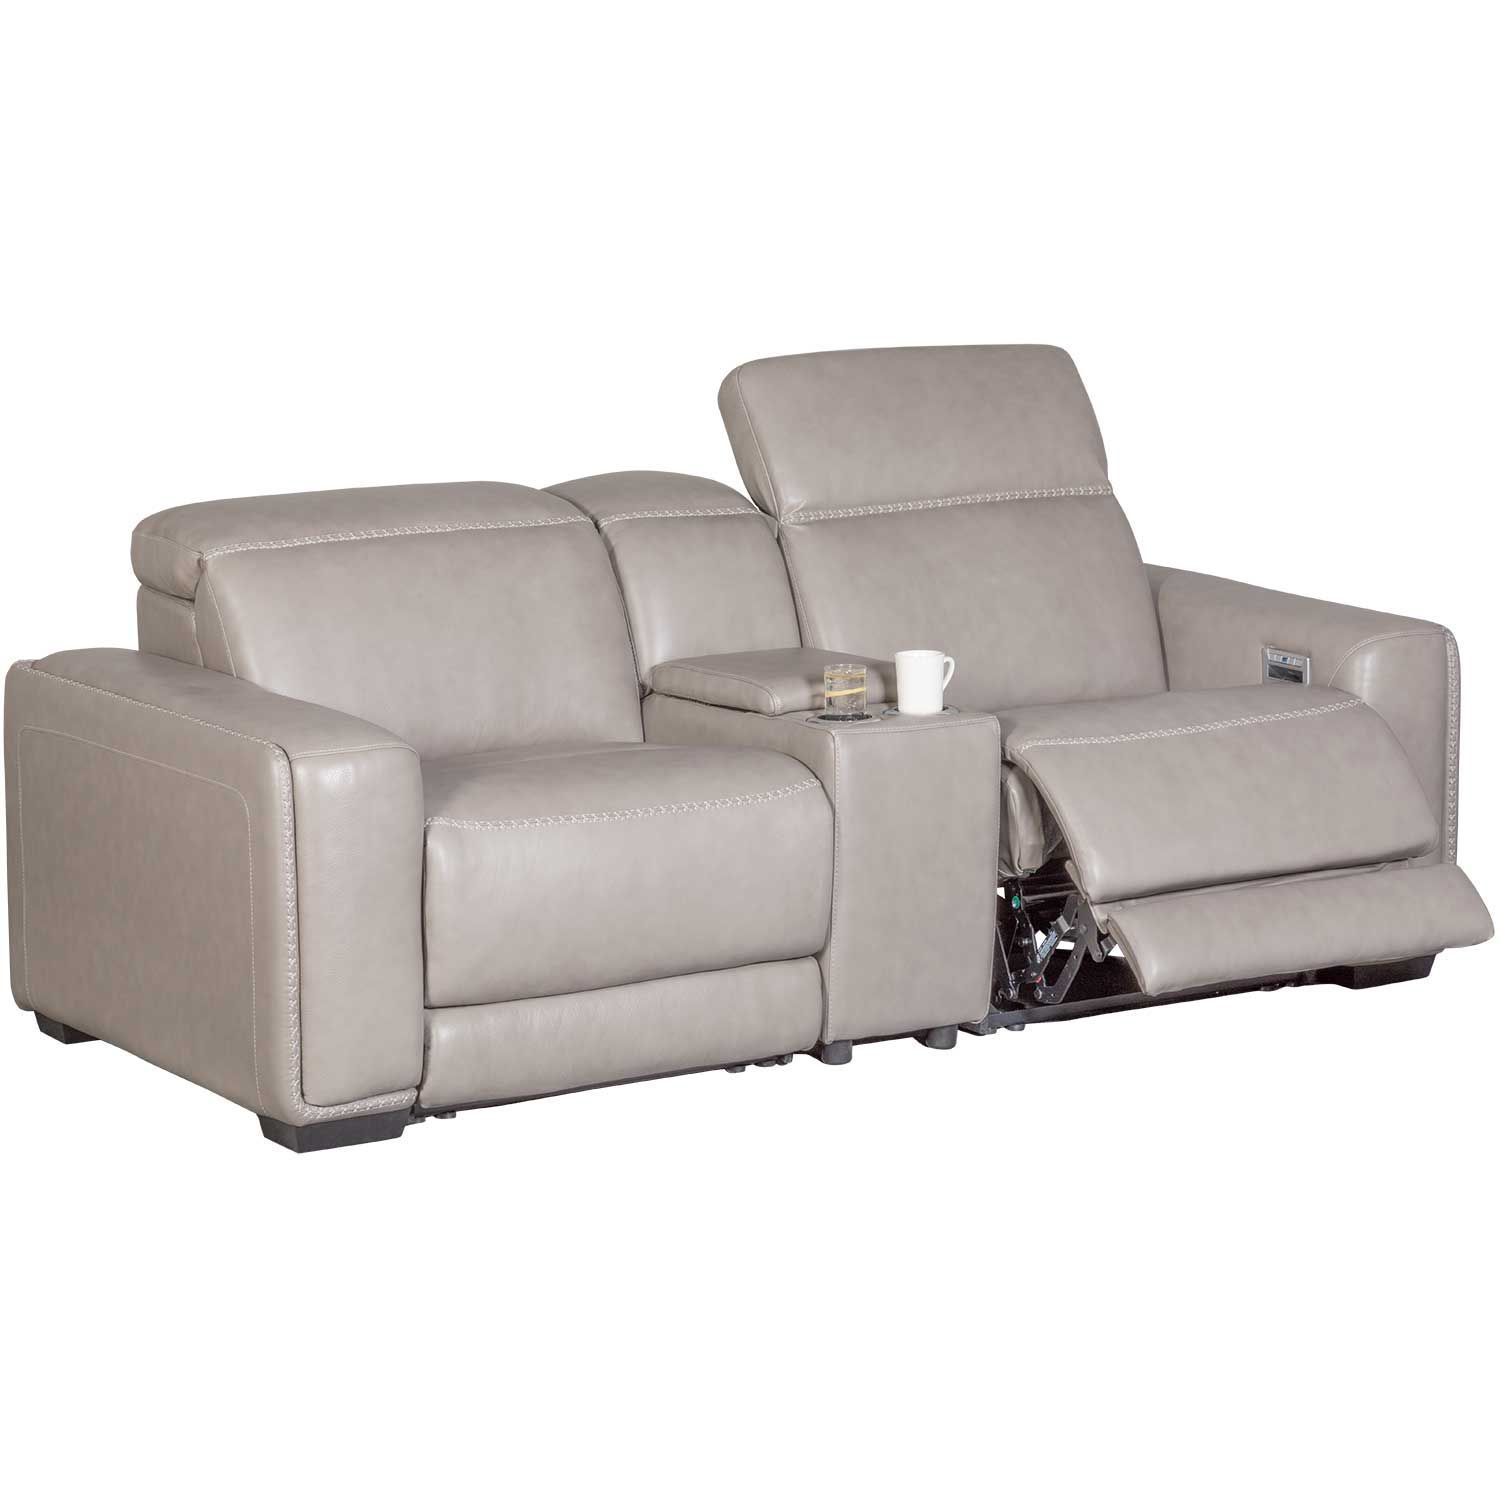 Picture of Correze Leather Power Reclining Console Loveseat w